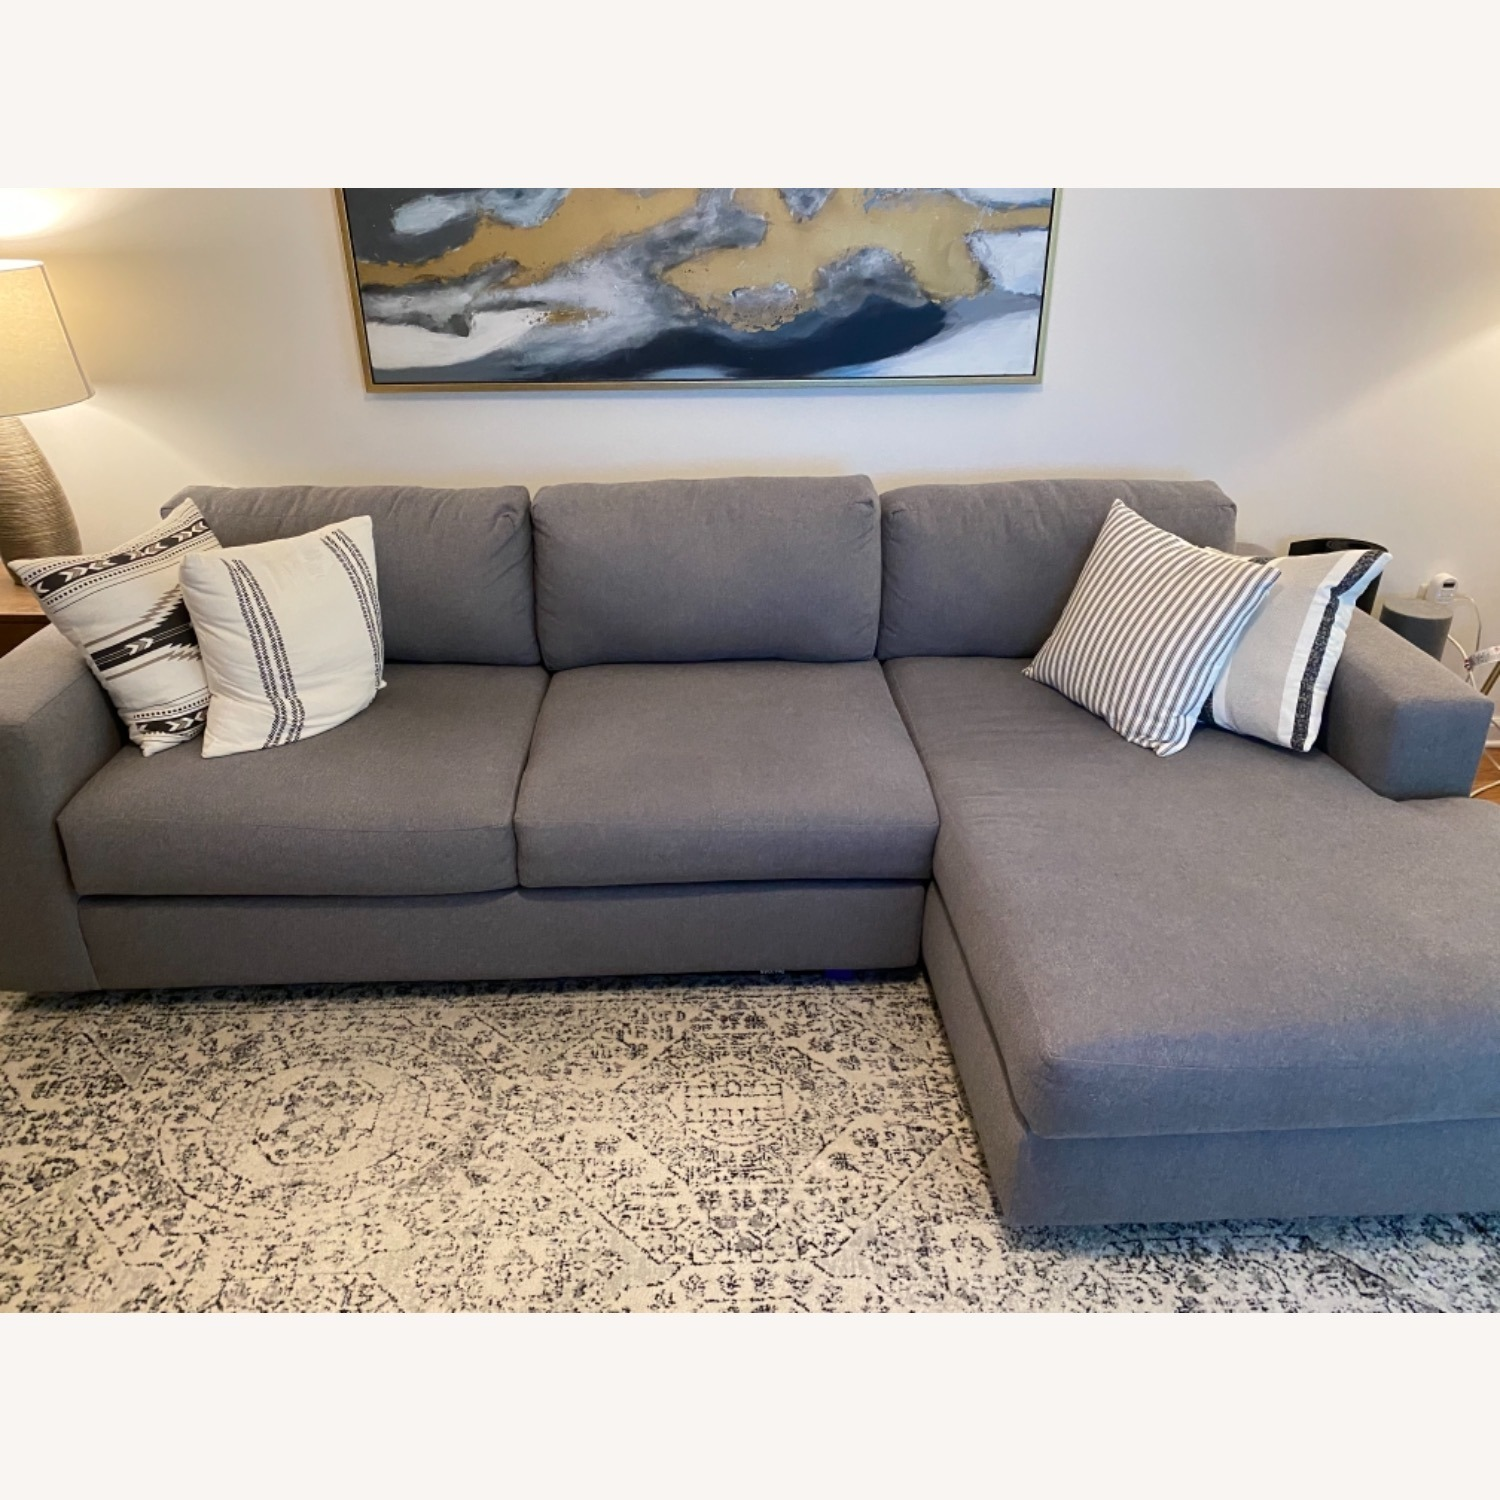 West Elm Urban Chaise Sectional - image-1